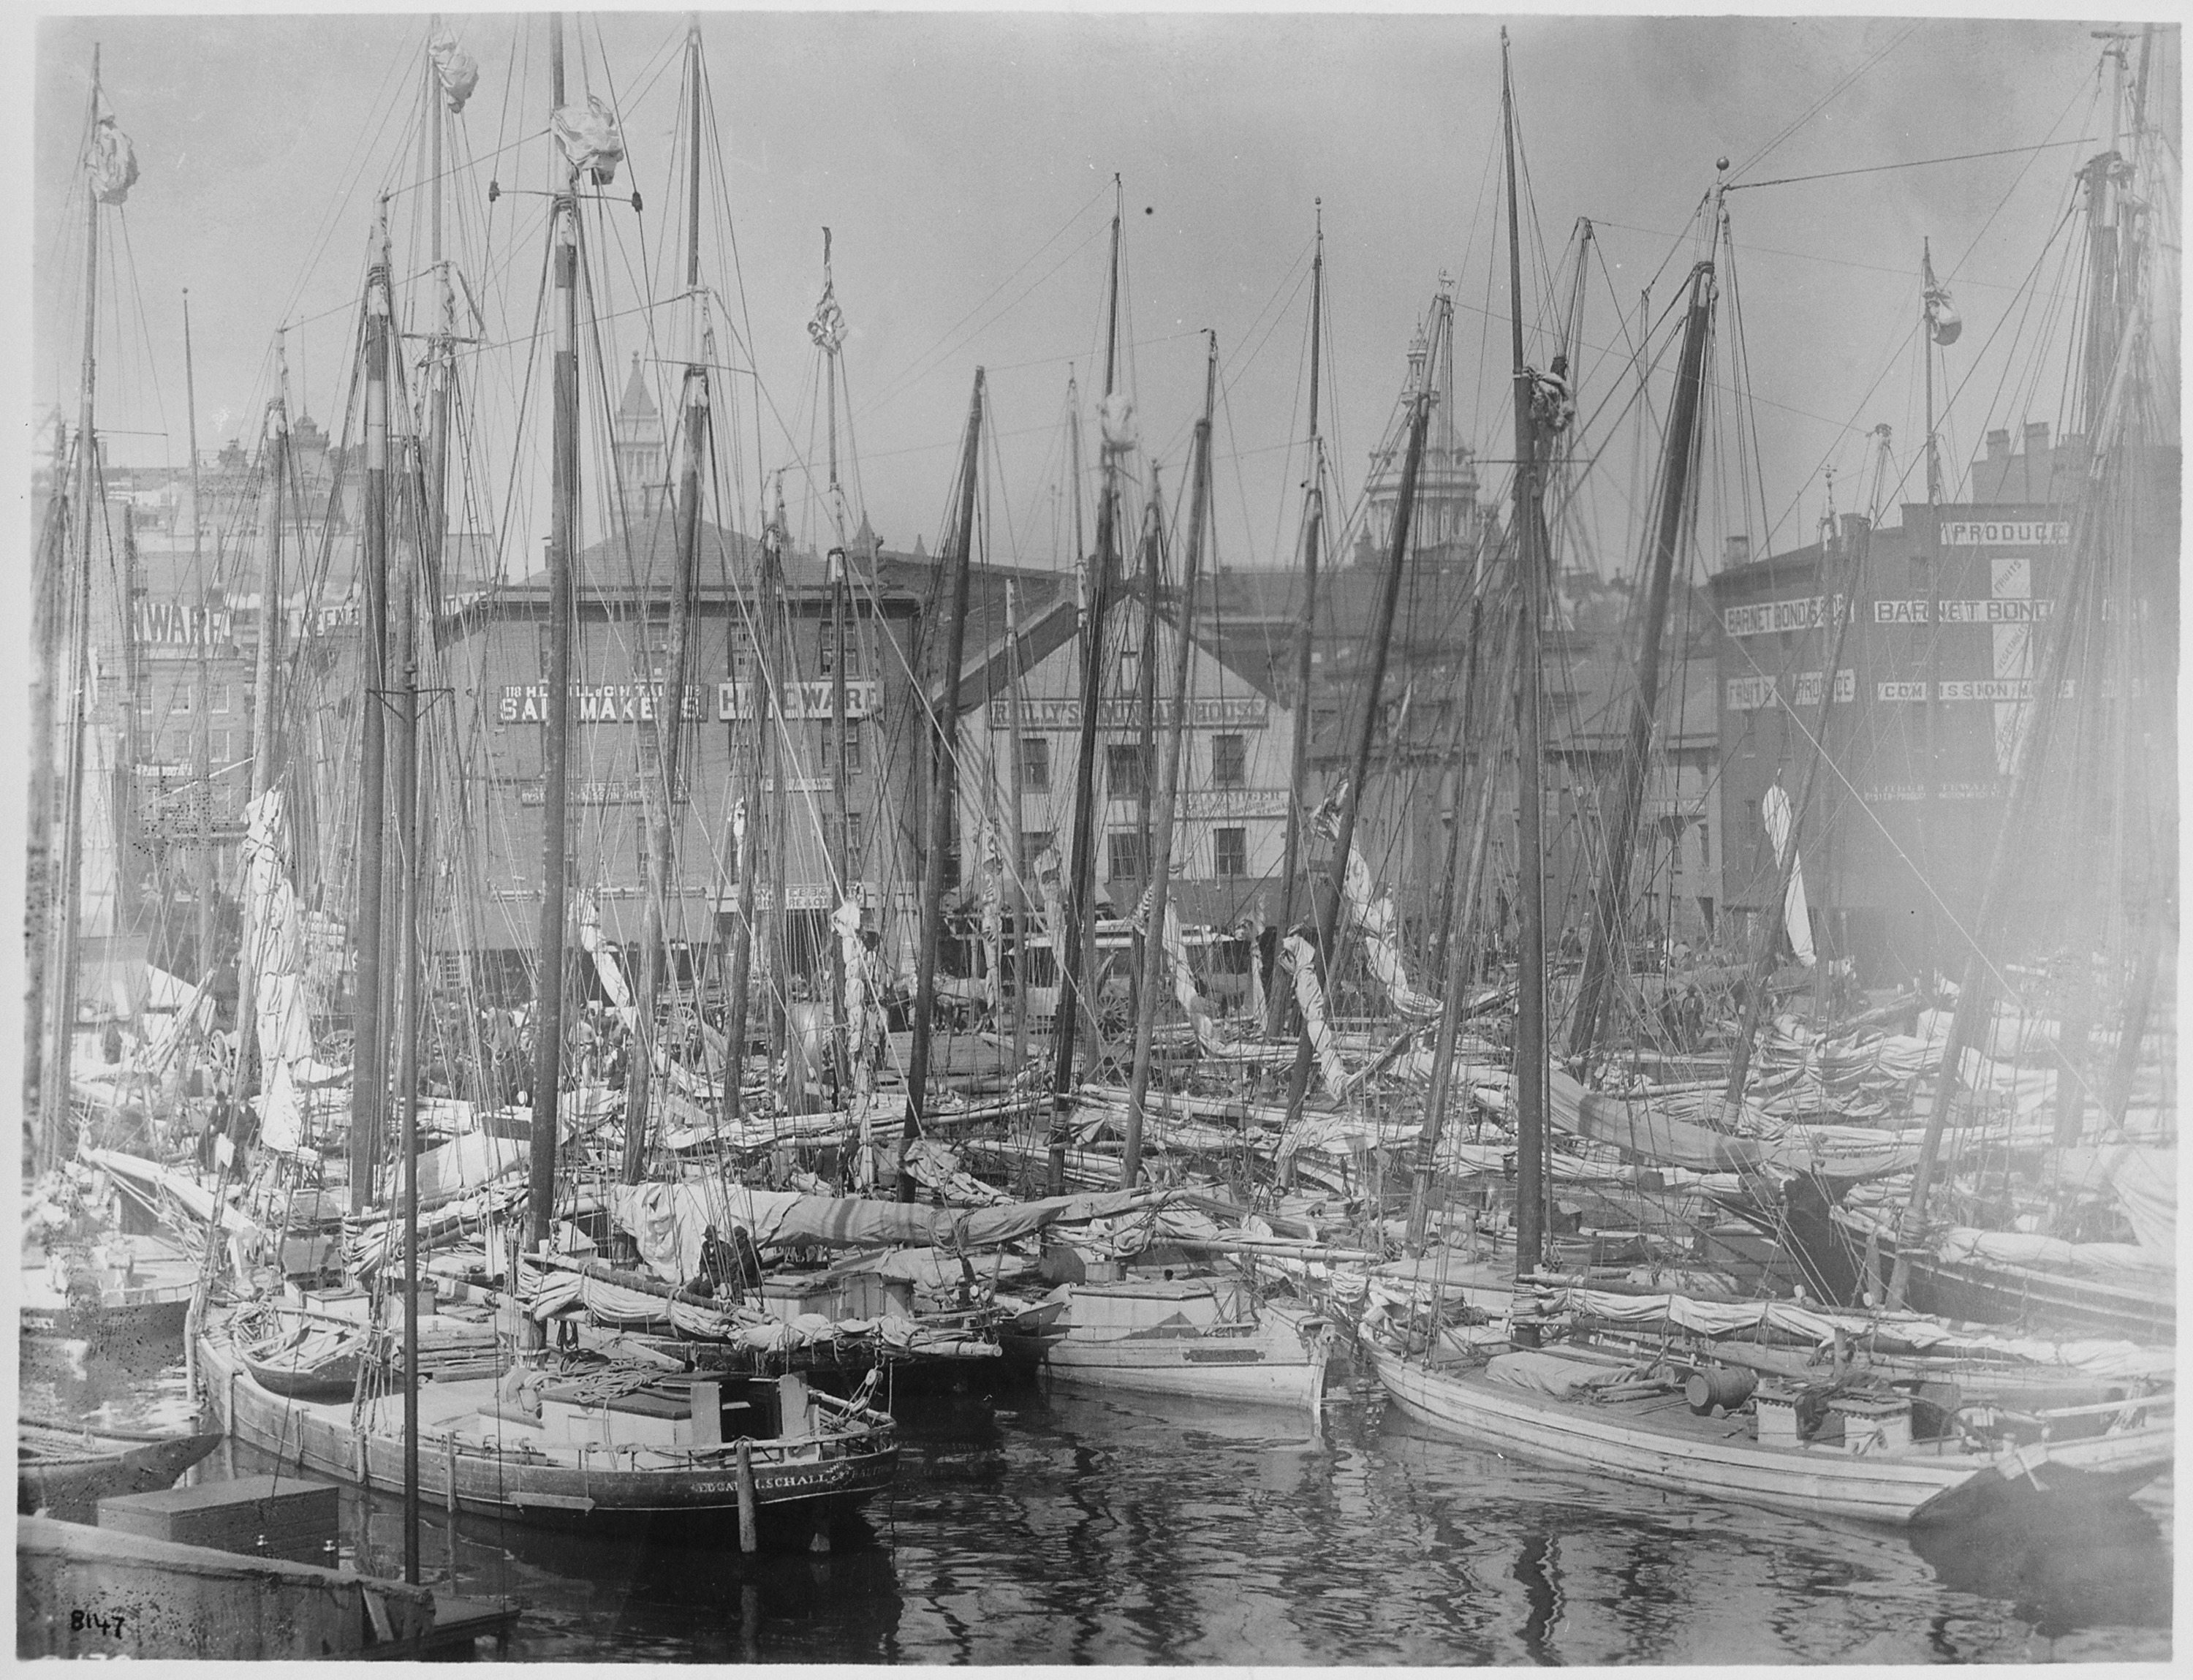 Can You Identify Where These Oyster Boats Are Docked?